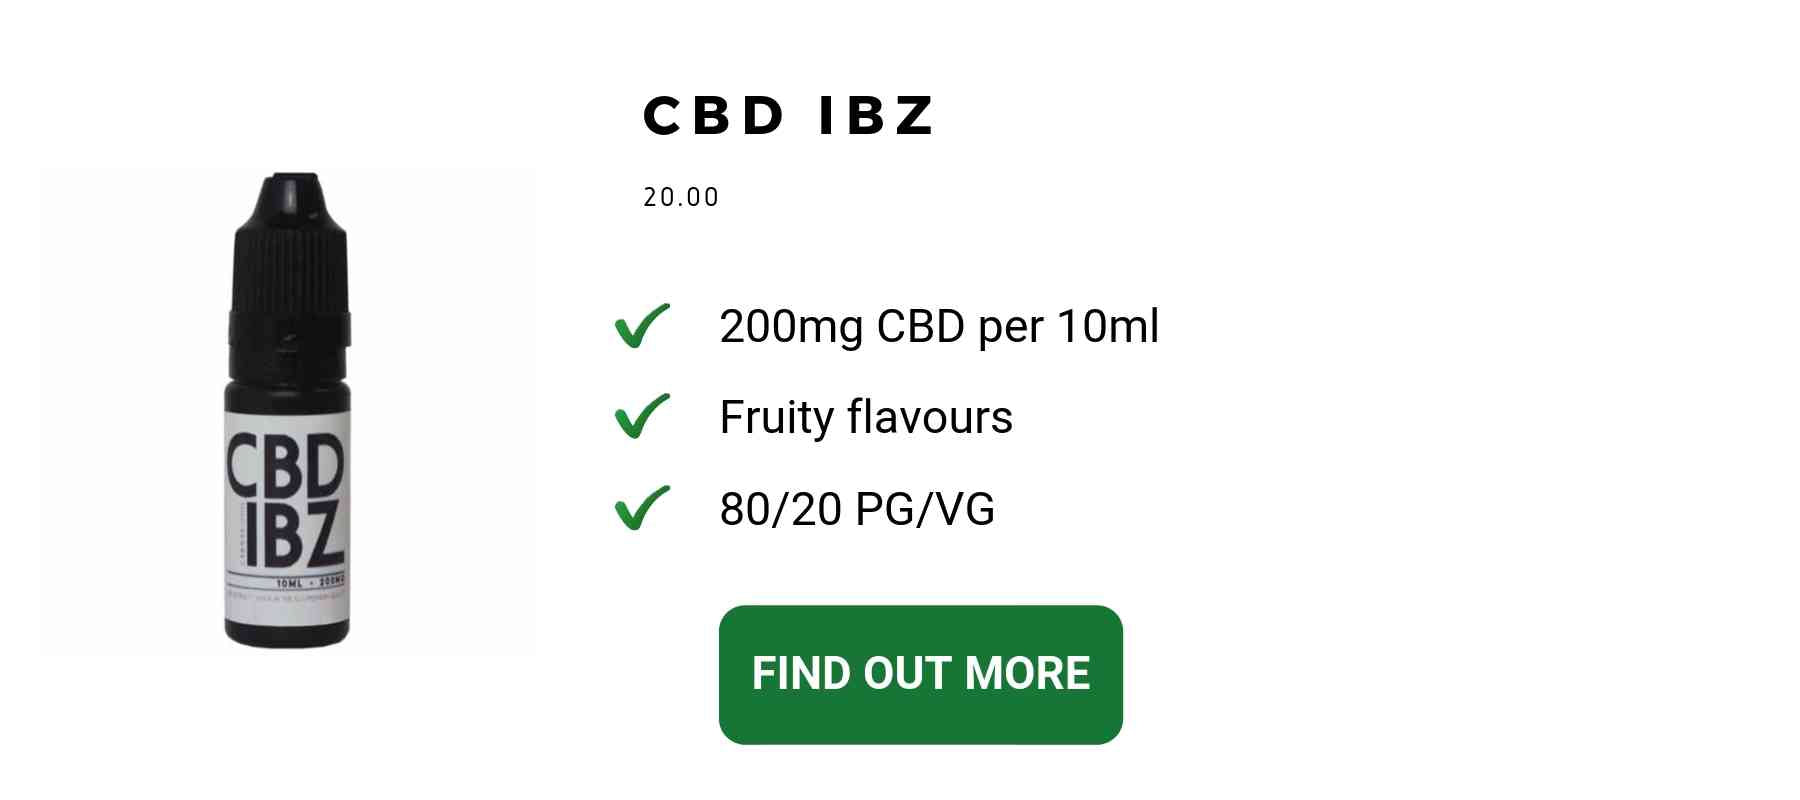 CBD Ibz Best CBD vape oil for flavour